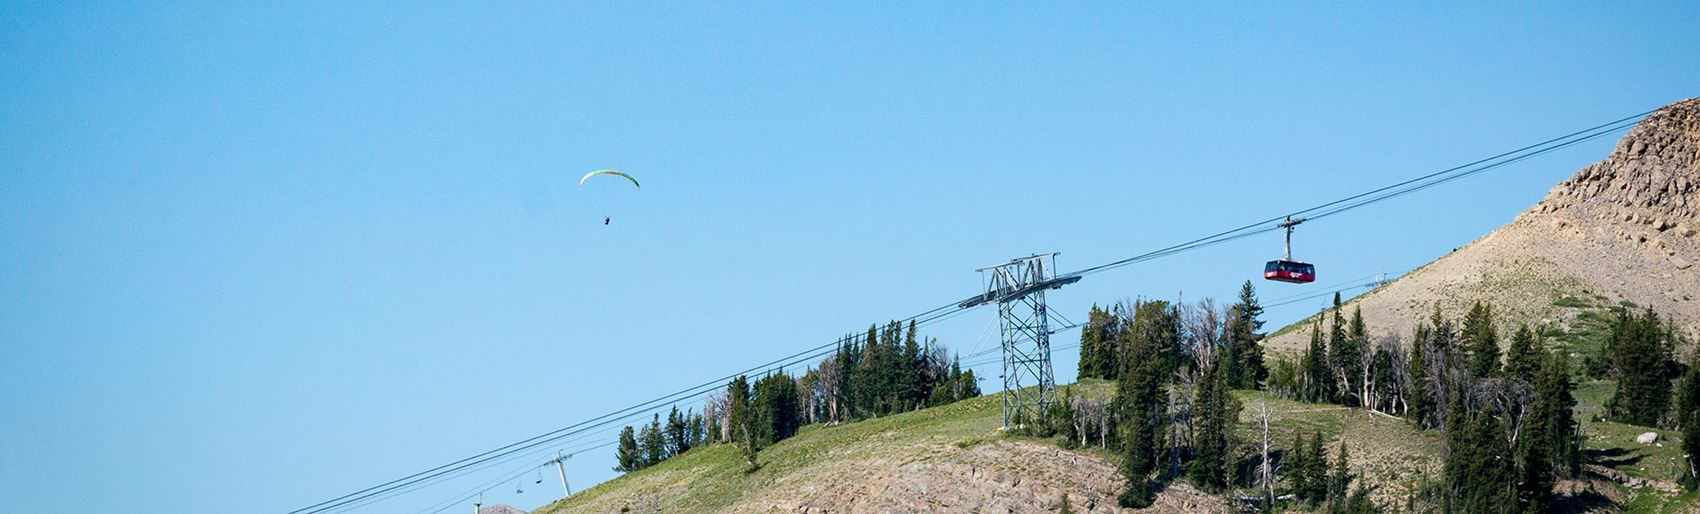 Paragliding in Jackson Hole